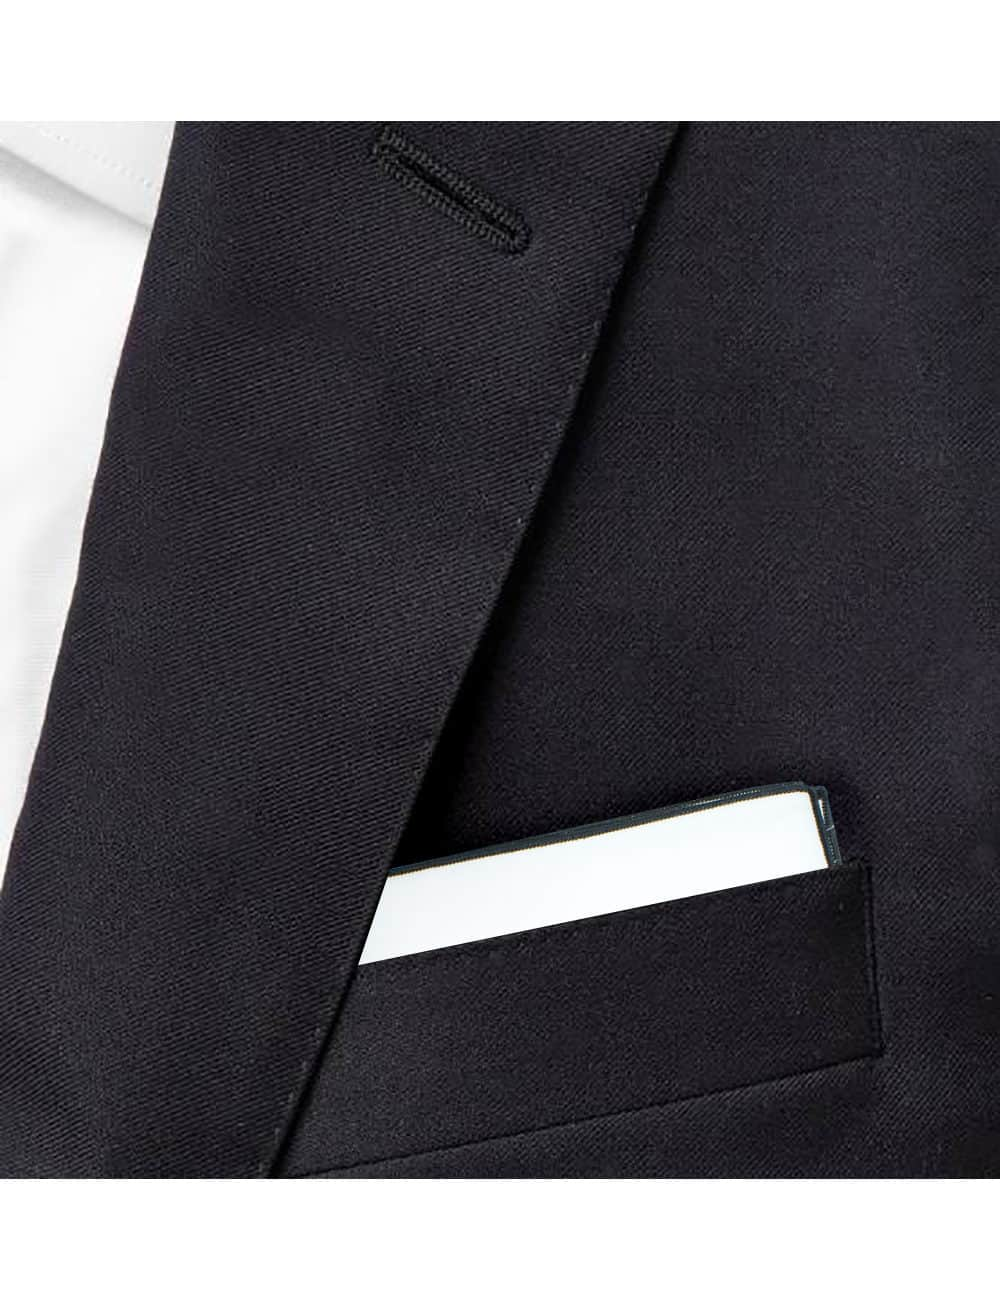 Solid White Woven Pocket Square with Black Trim PSQ20B.7